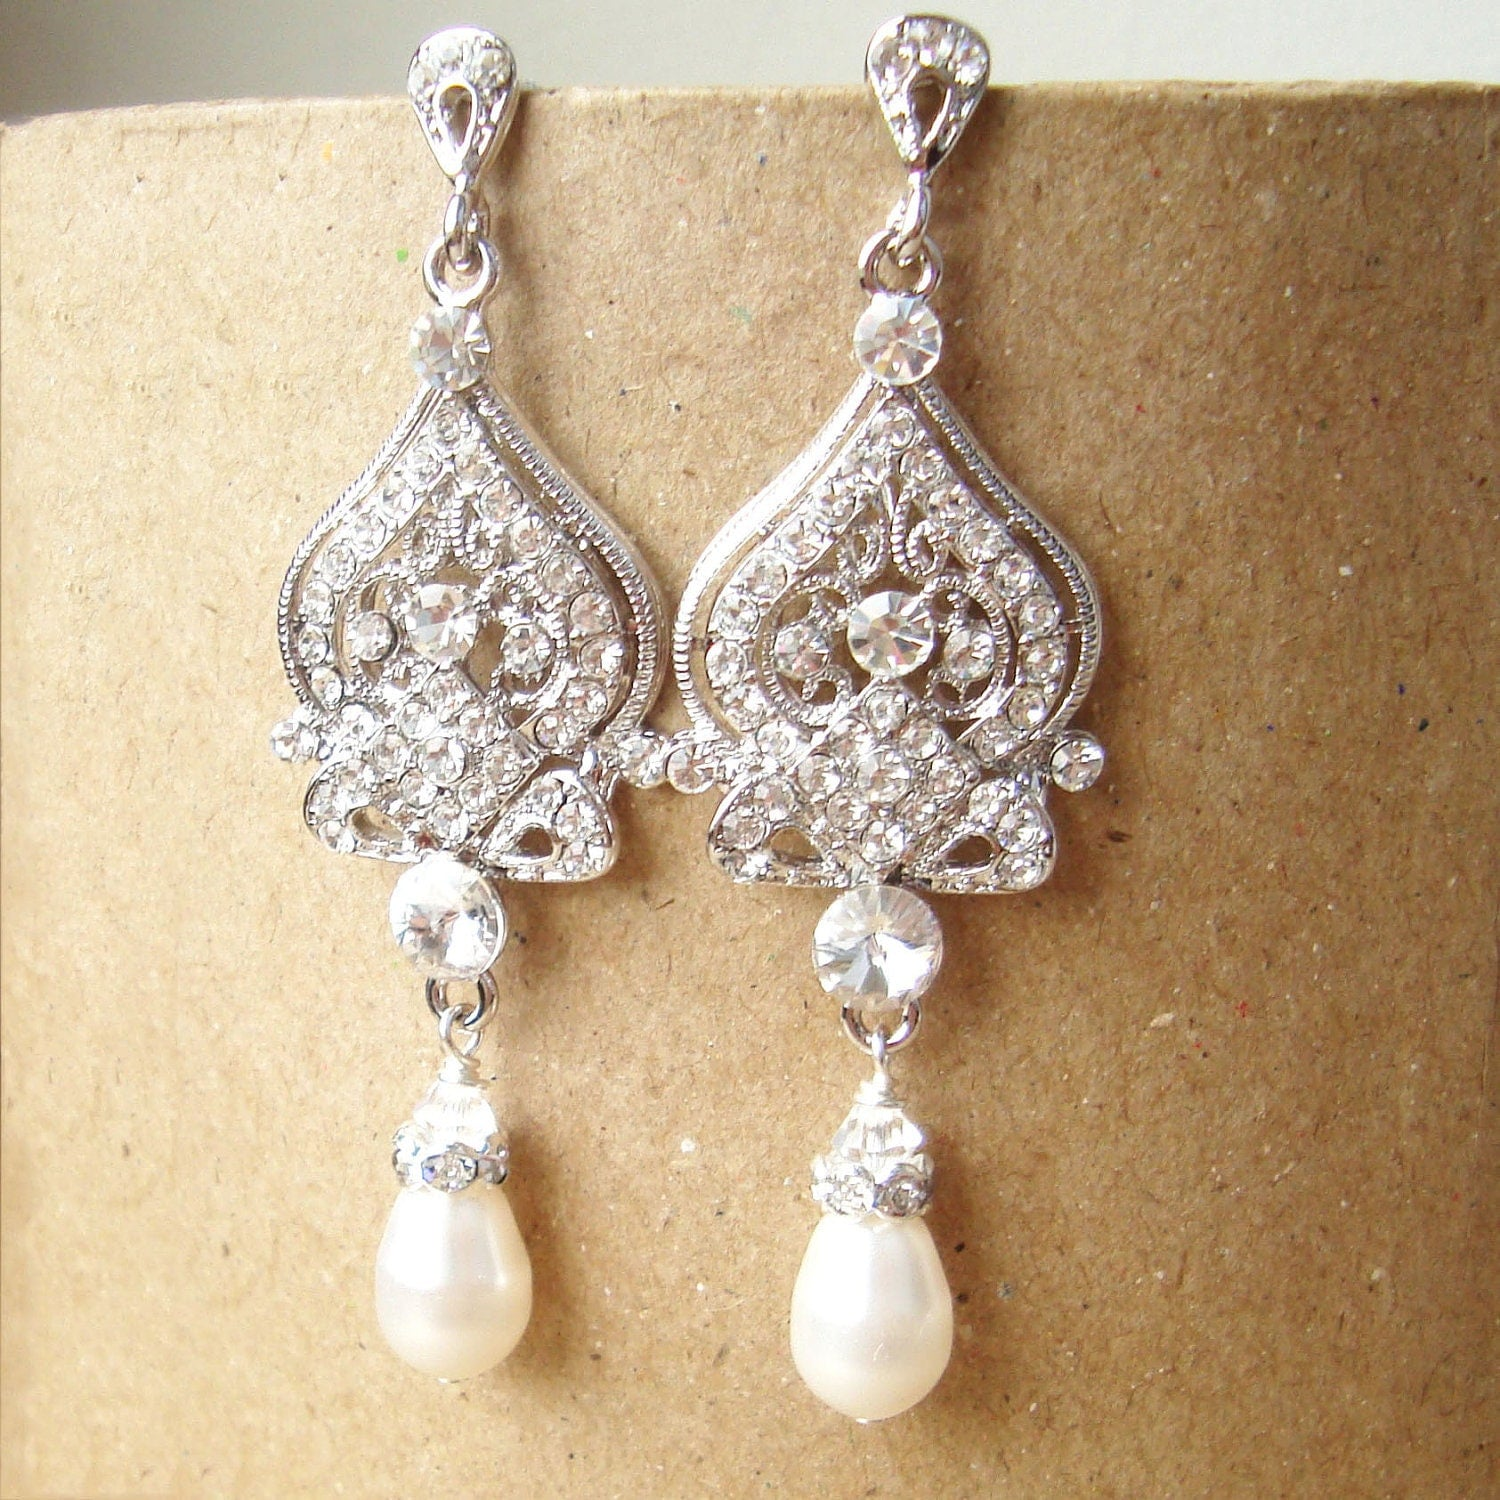 Rhinestone Chandelier Bridal Earrings Vintage Style By